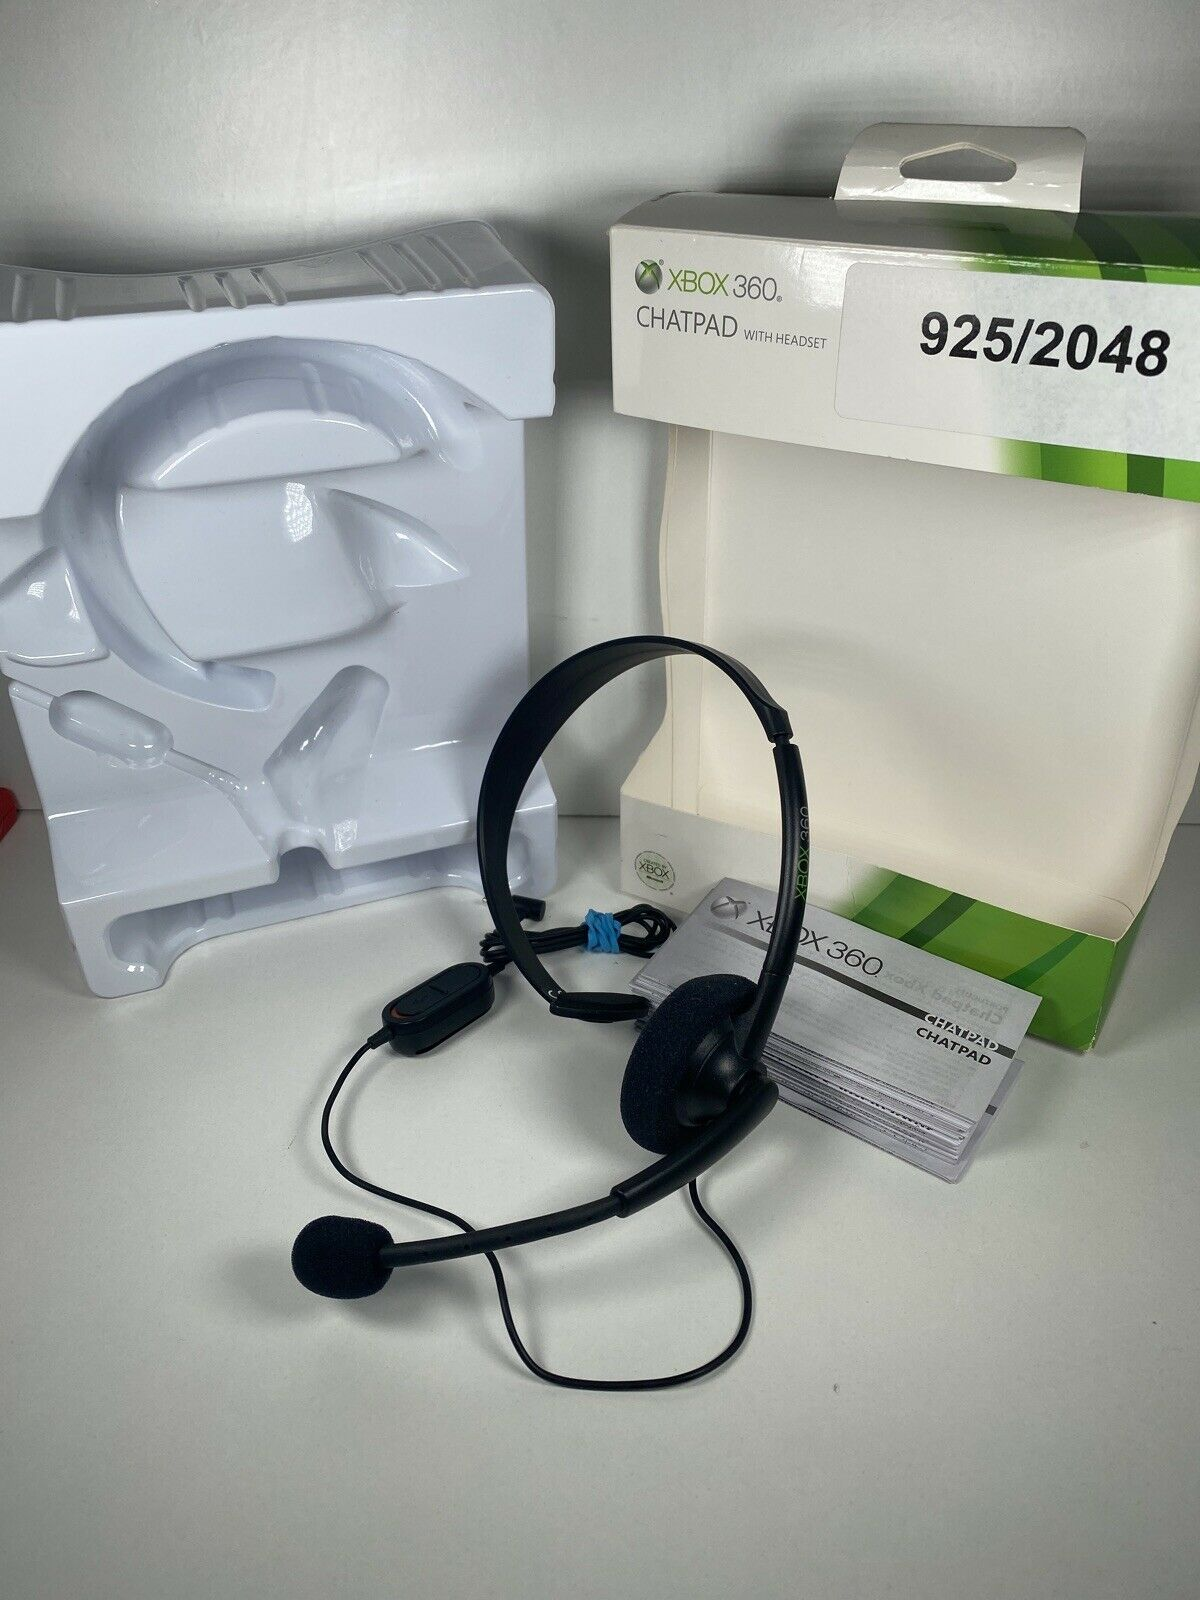 Microsoft Xbox 360 Genuine Chatpad Headset Only Boxed